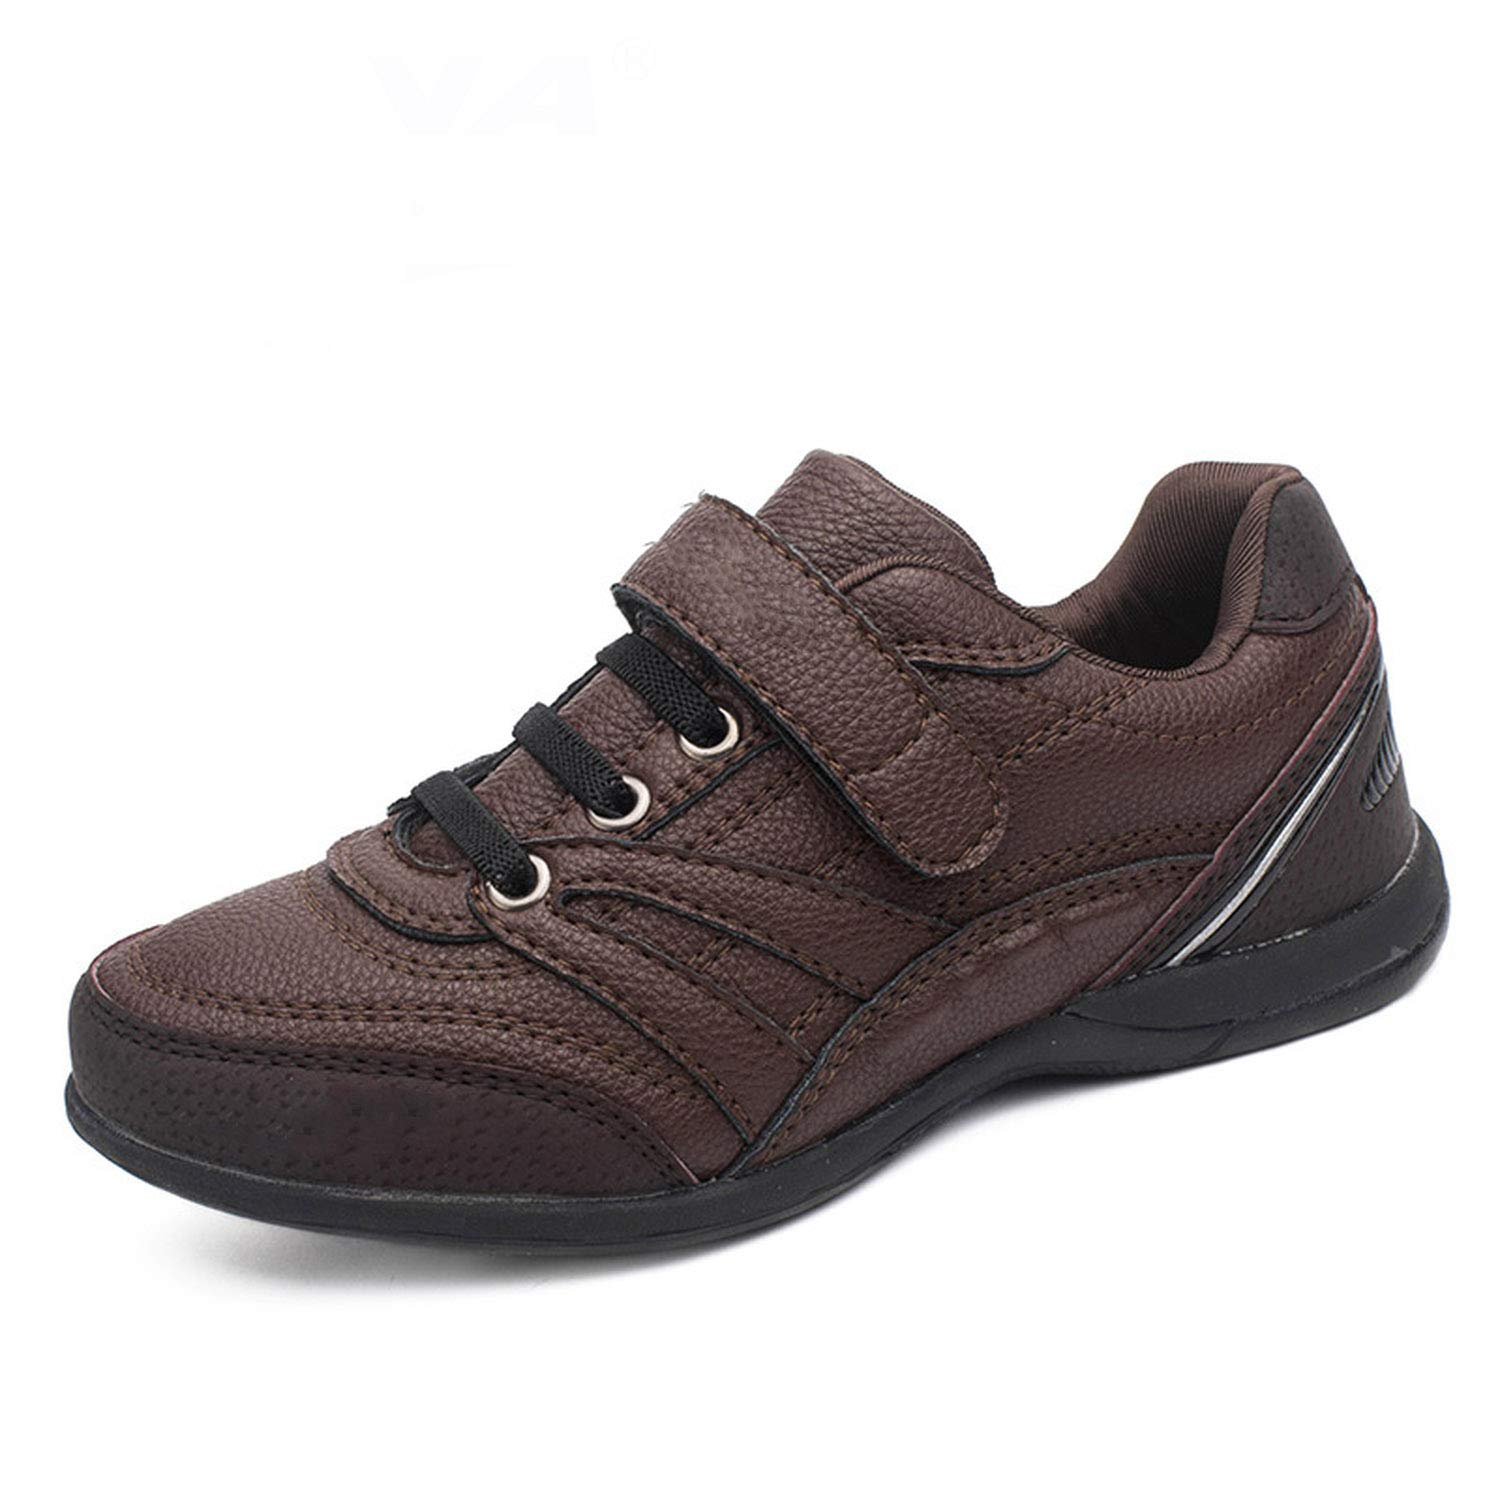 Desirca New Classics Style Children Casual Shoes Hook & Loop Boys Shoes Outdoor Walking Jogging Sneakers Comfortable,Coffee,3